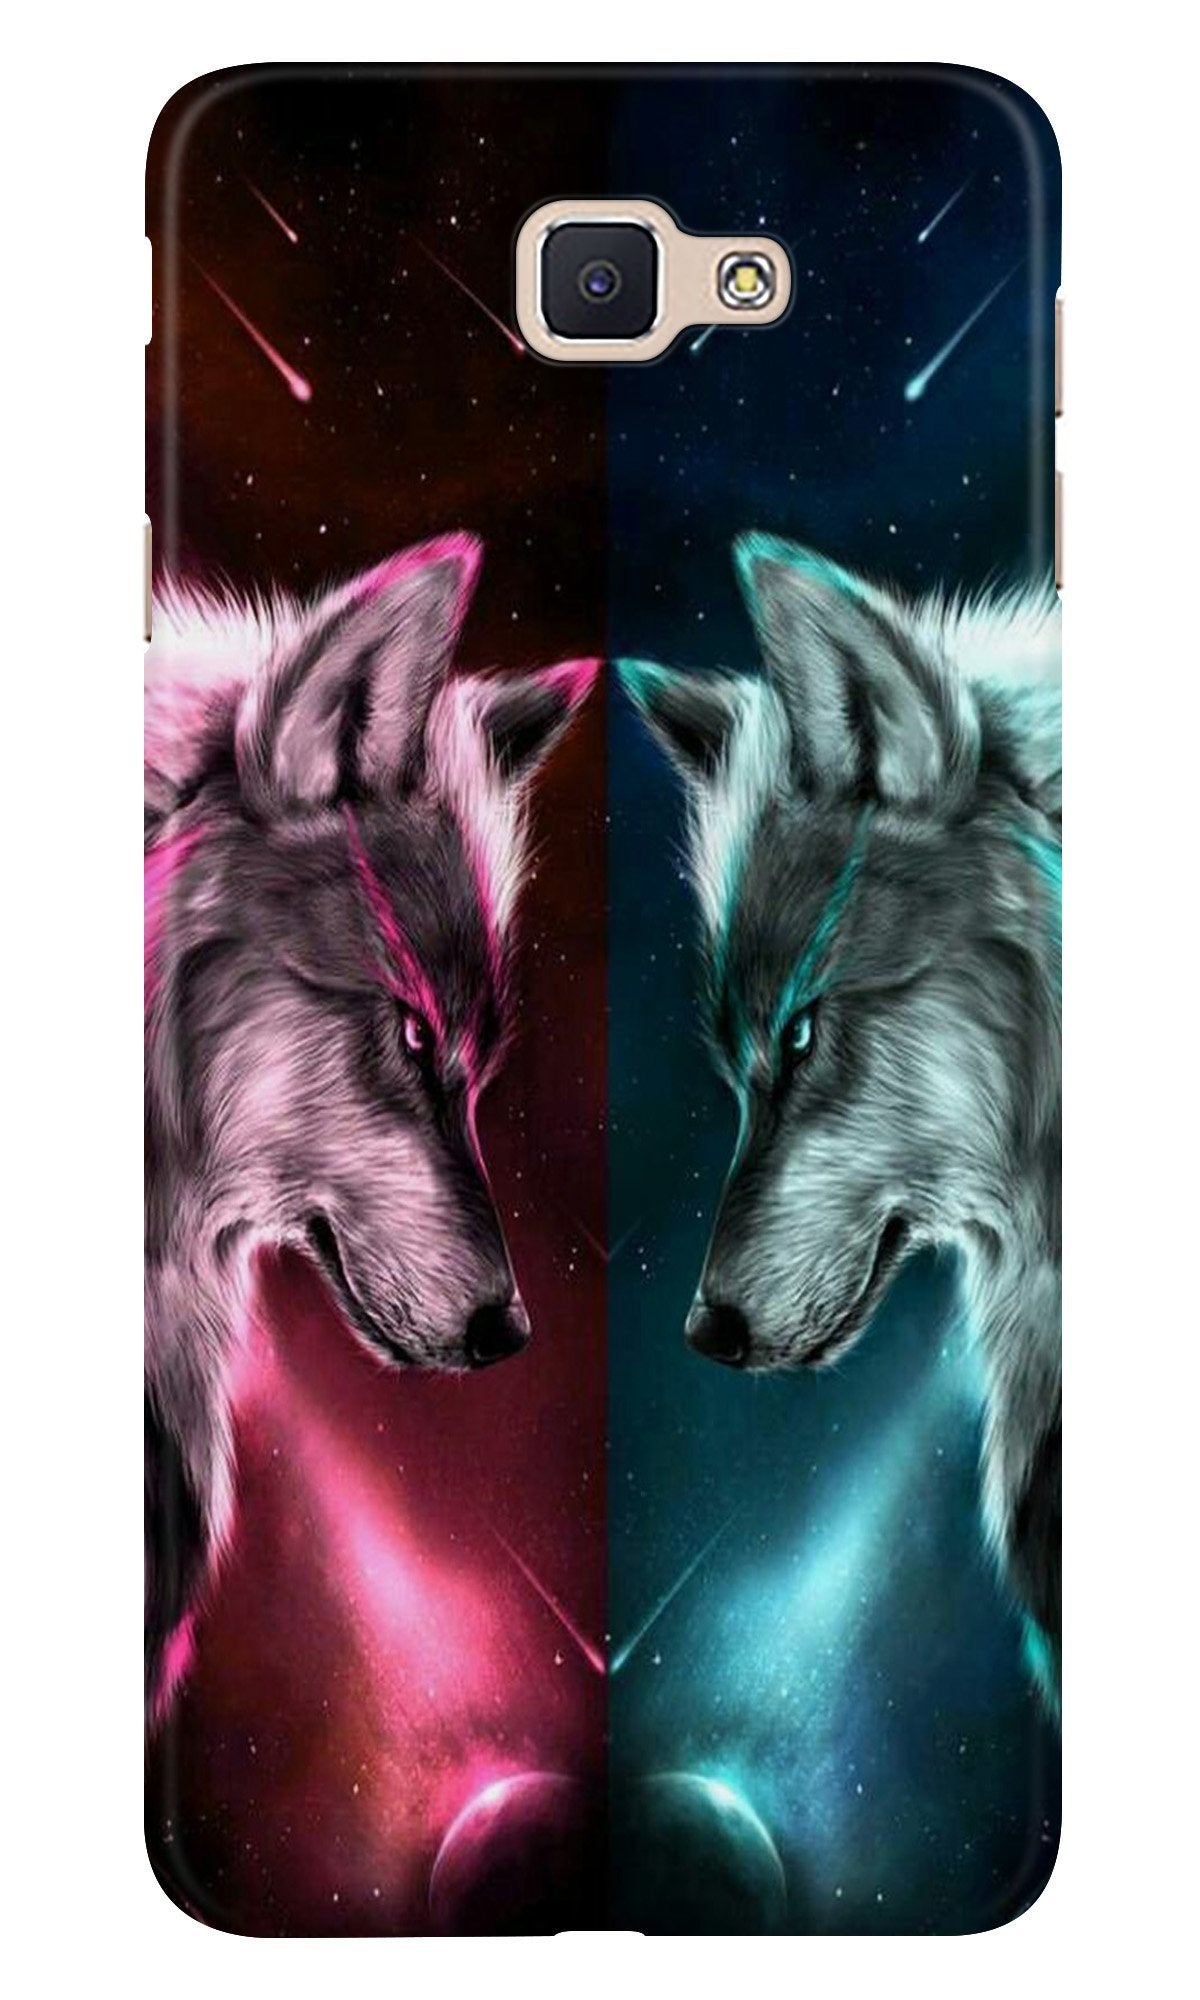 Wolf fight Case for Samsung Galaxy J7 Prime (Design No. 221)